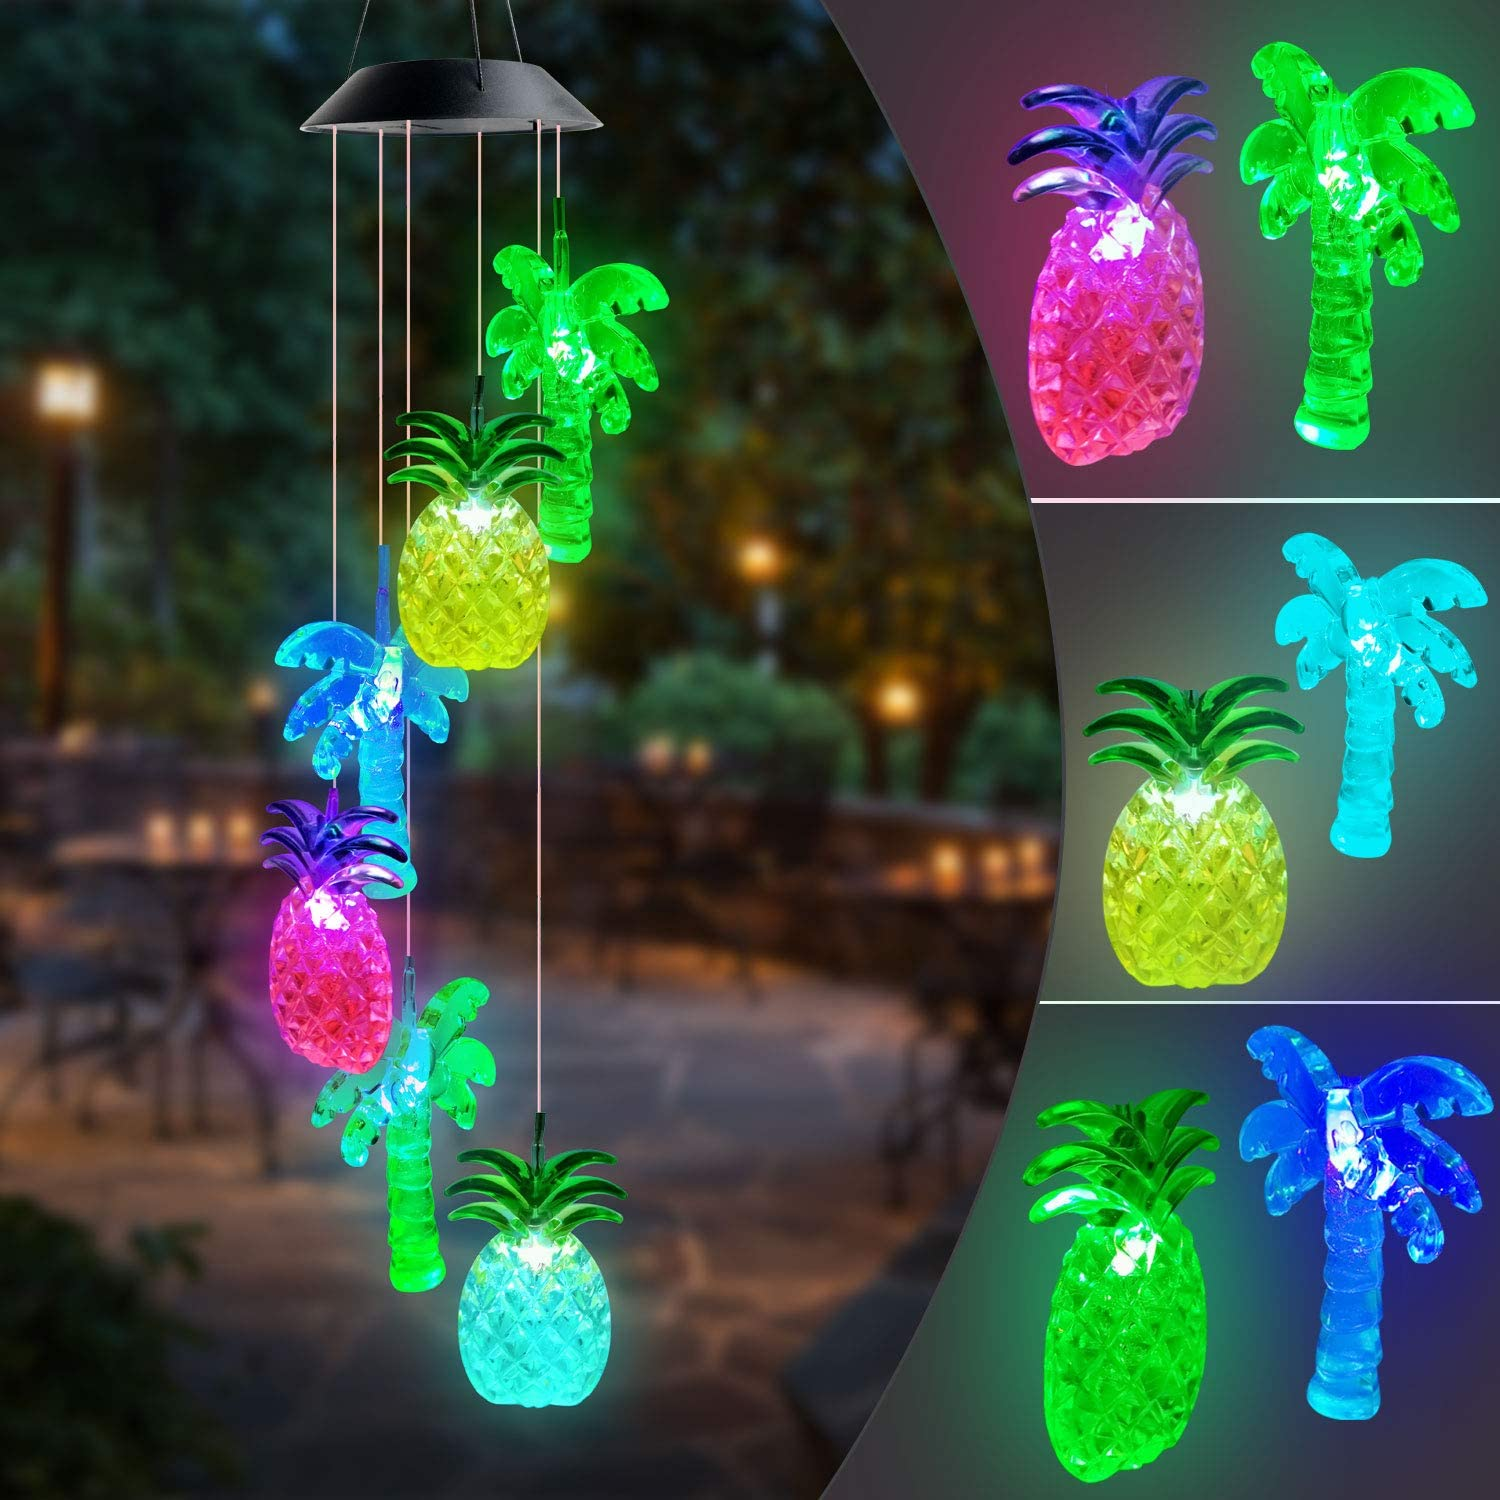 JOBOSI Pineapple Coconut Tree Wind Chimes Solar Wind Chime Garden Decor Summer sea Wind Chime Interesting Gifts for mom Family Friends